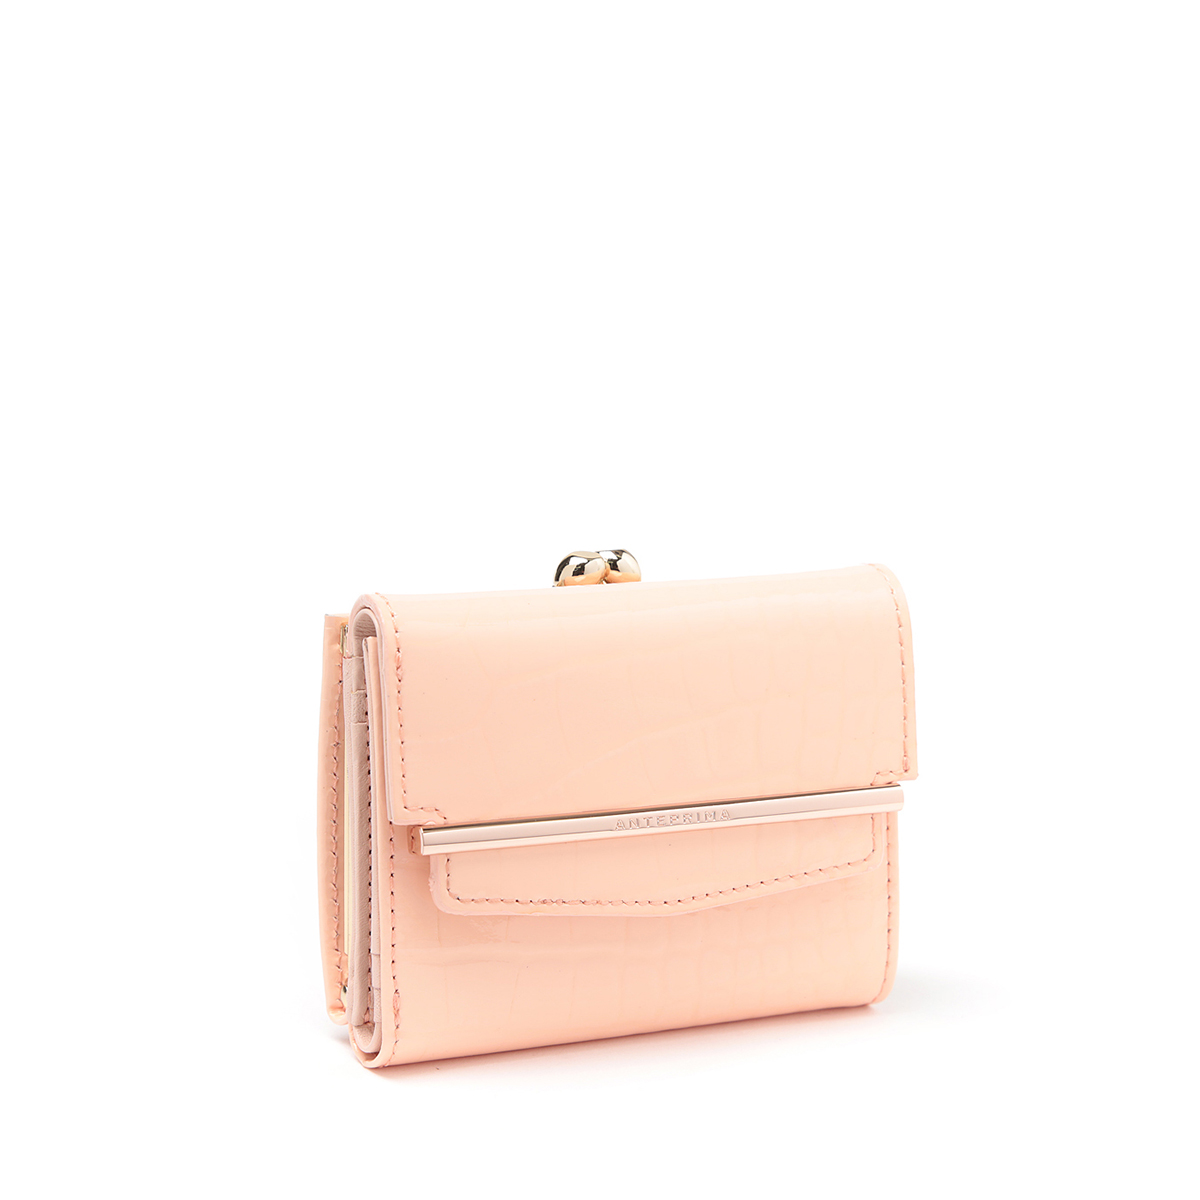 【ANTEPRIMA公式】アンテプリマ アネッロ 三つ折りウォレット ライトピンク ANTEPRIMA EANP10523 SMALL WALLET